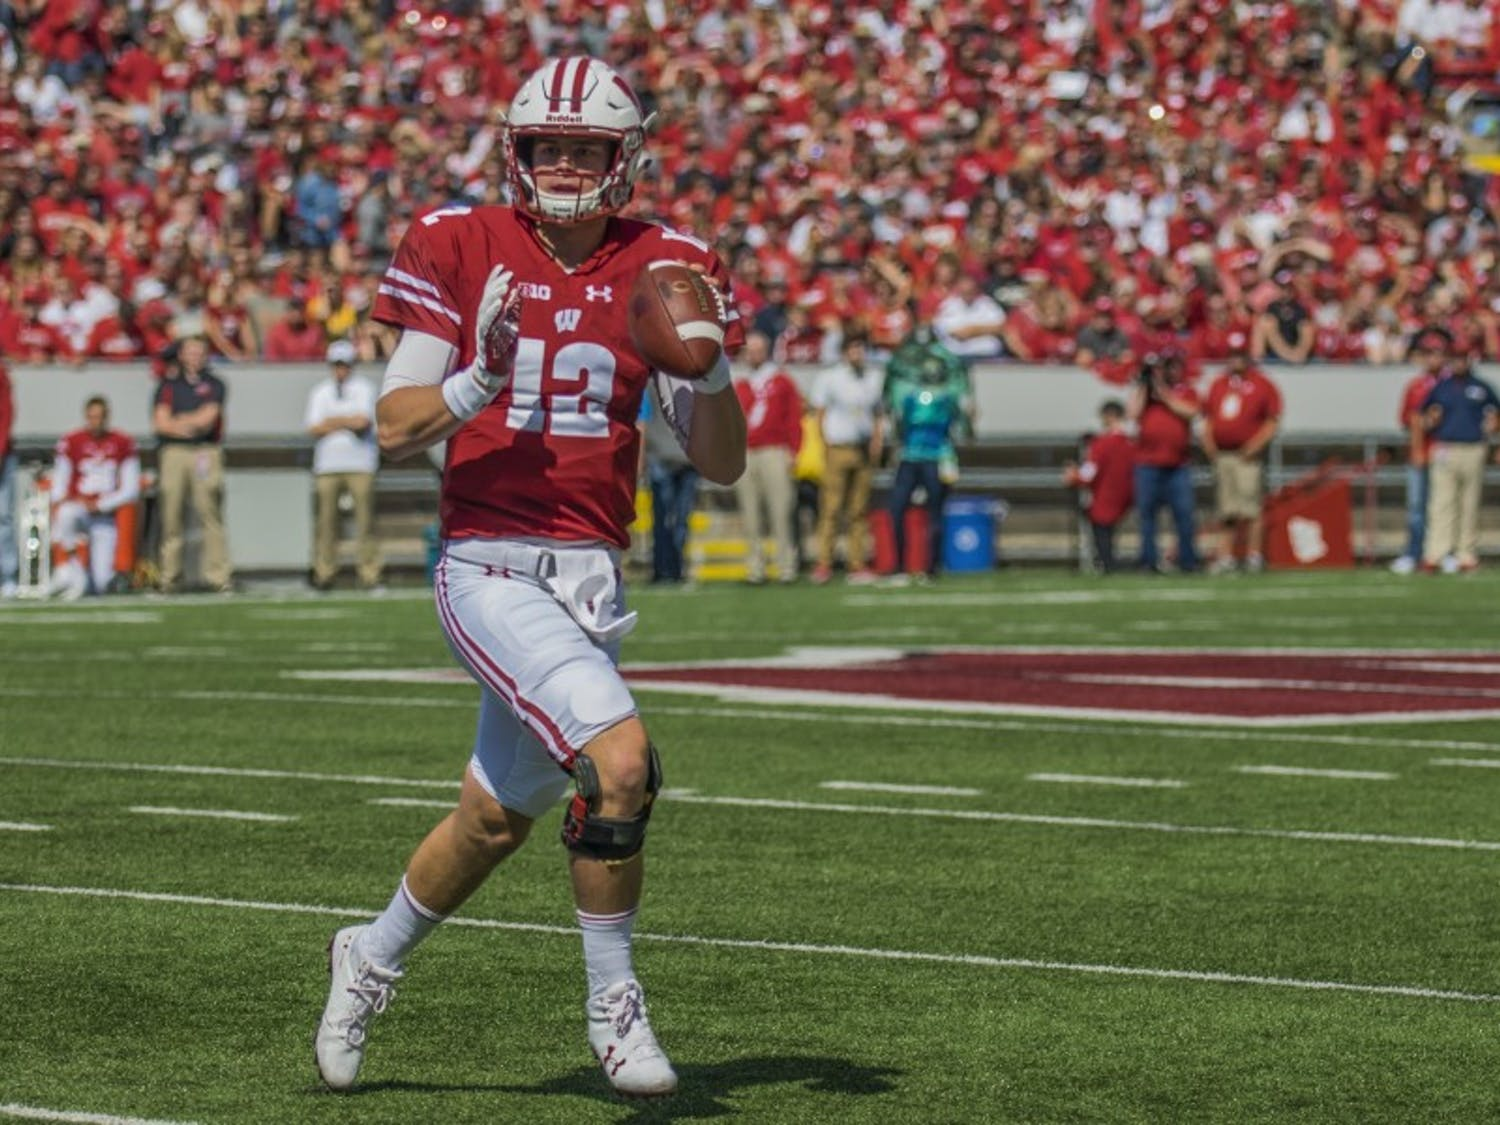 Alex Hornibrook is looking to lead Wisconsin to the top of not only the Big Ten West, but also the Big Ten.